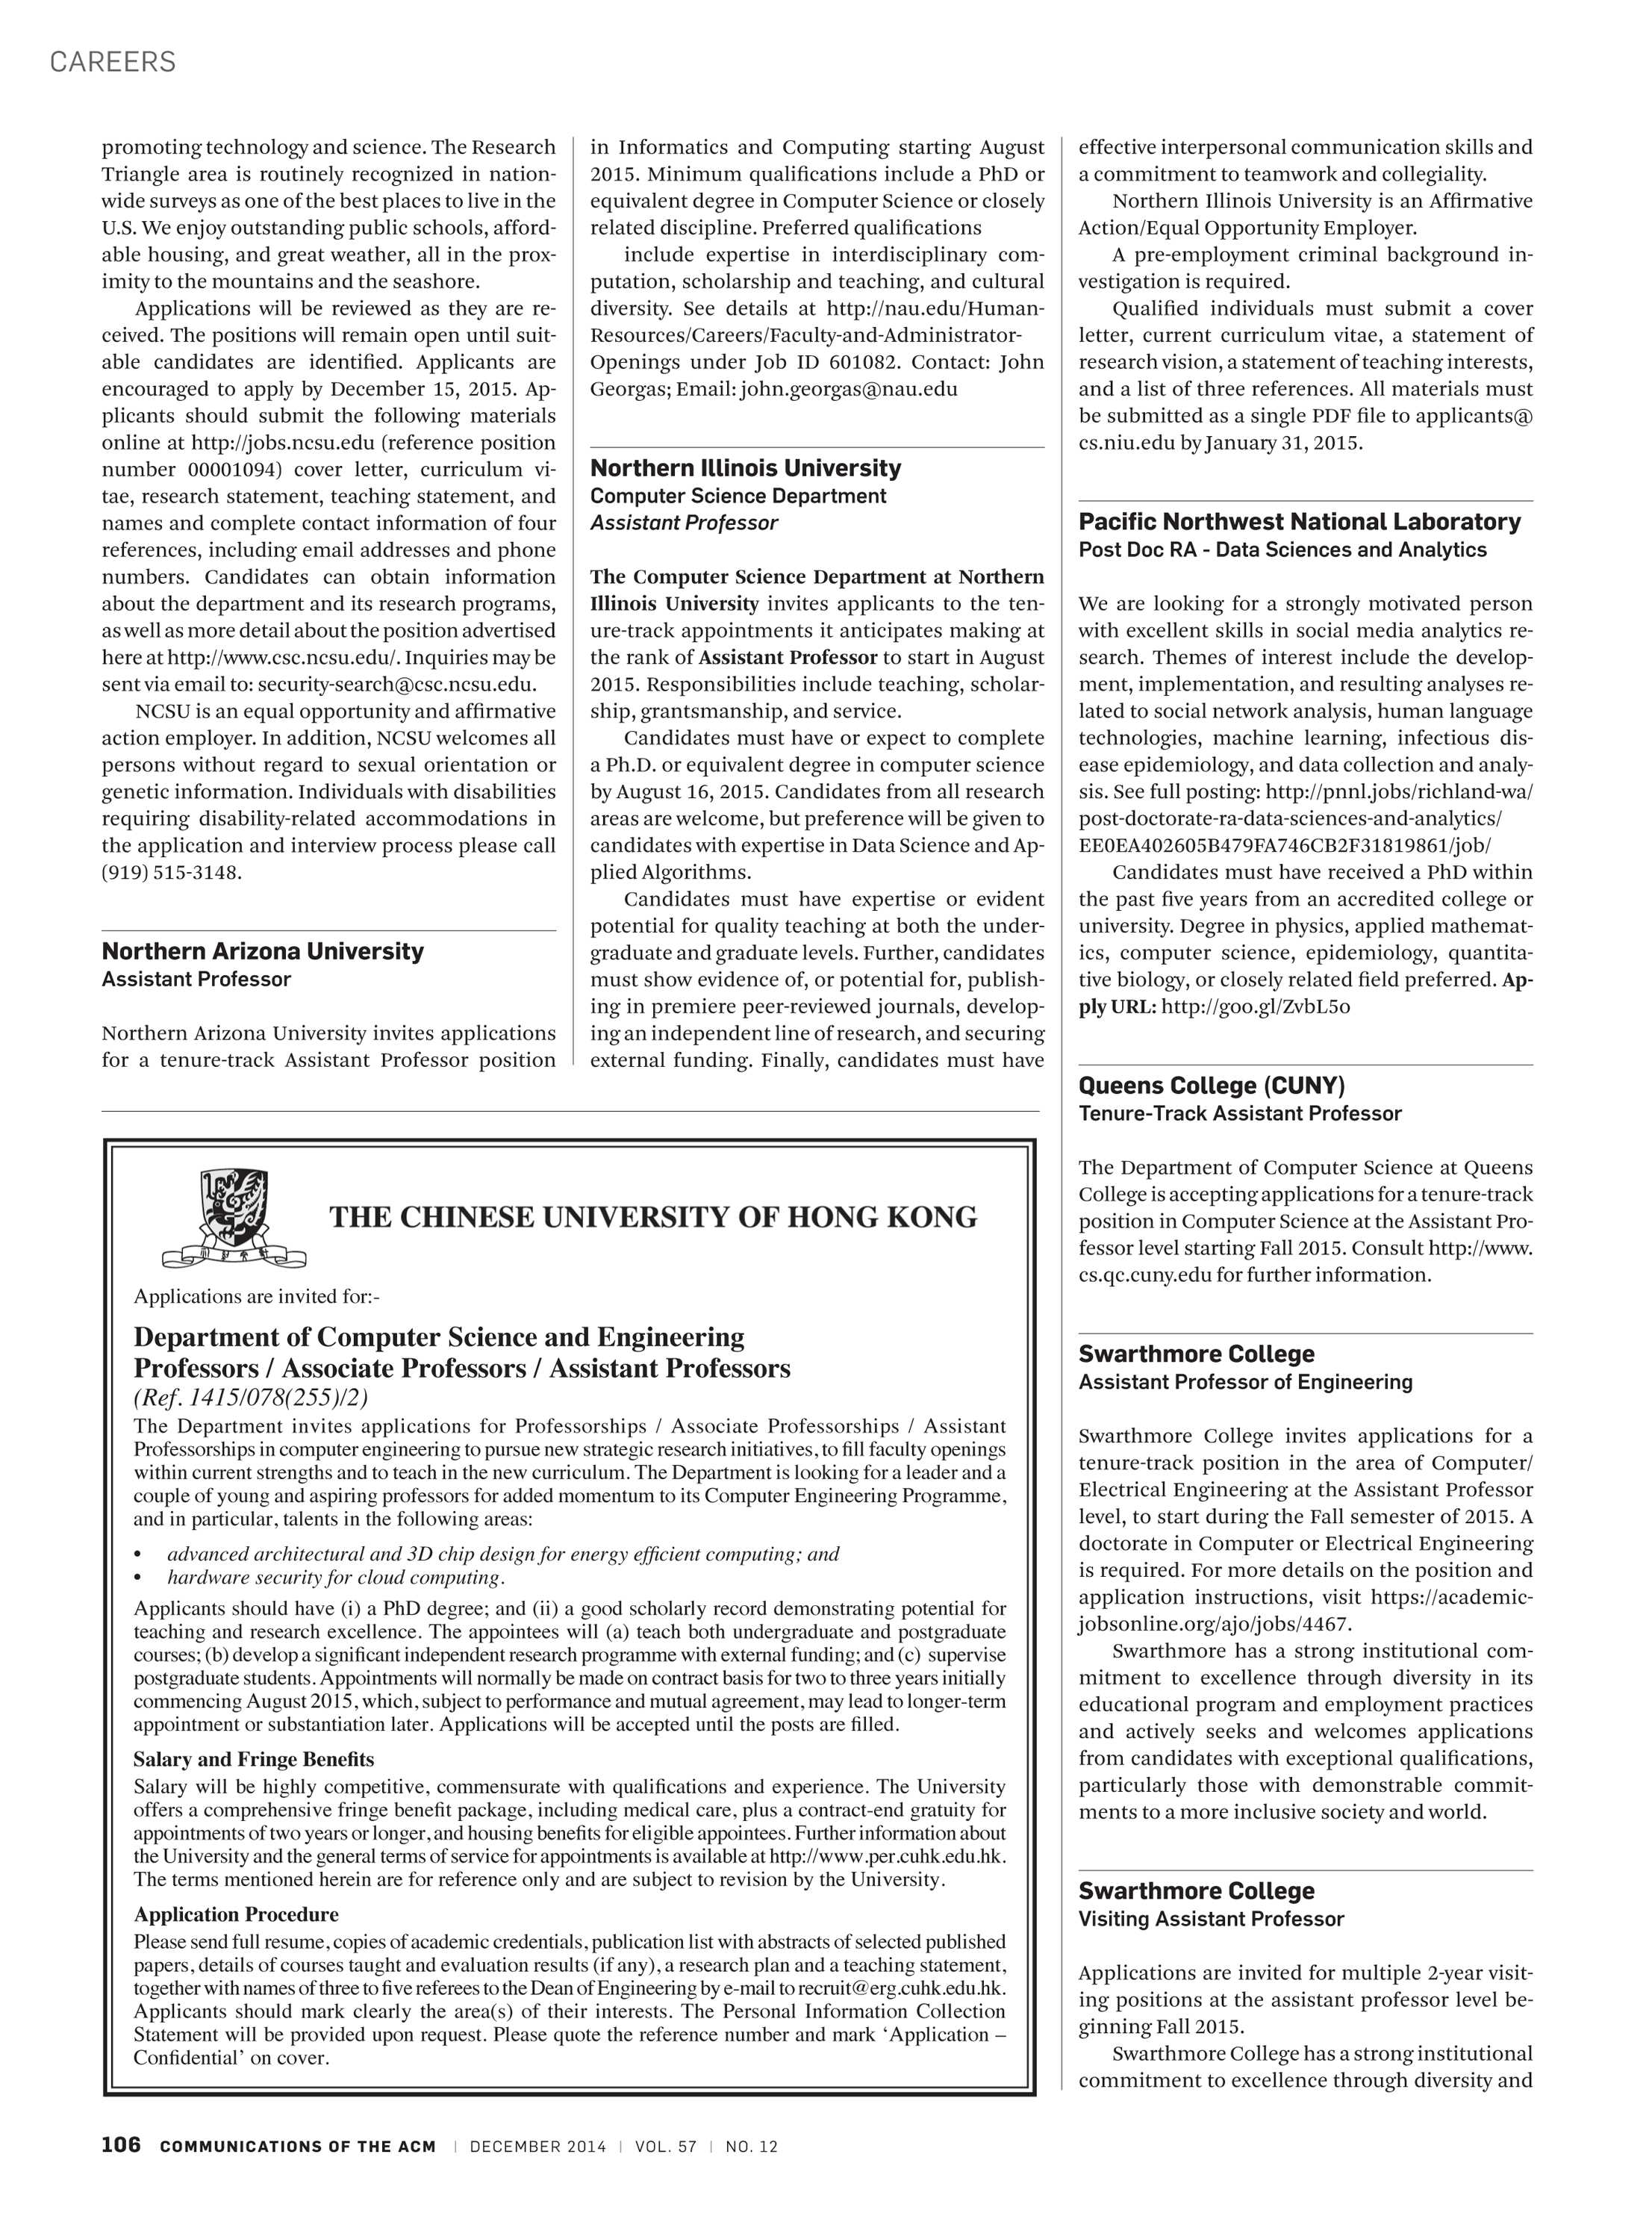 Communications of the ACM - December 2014 - page 106